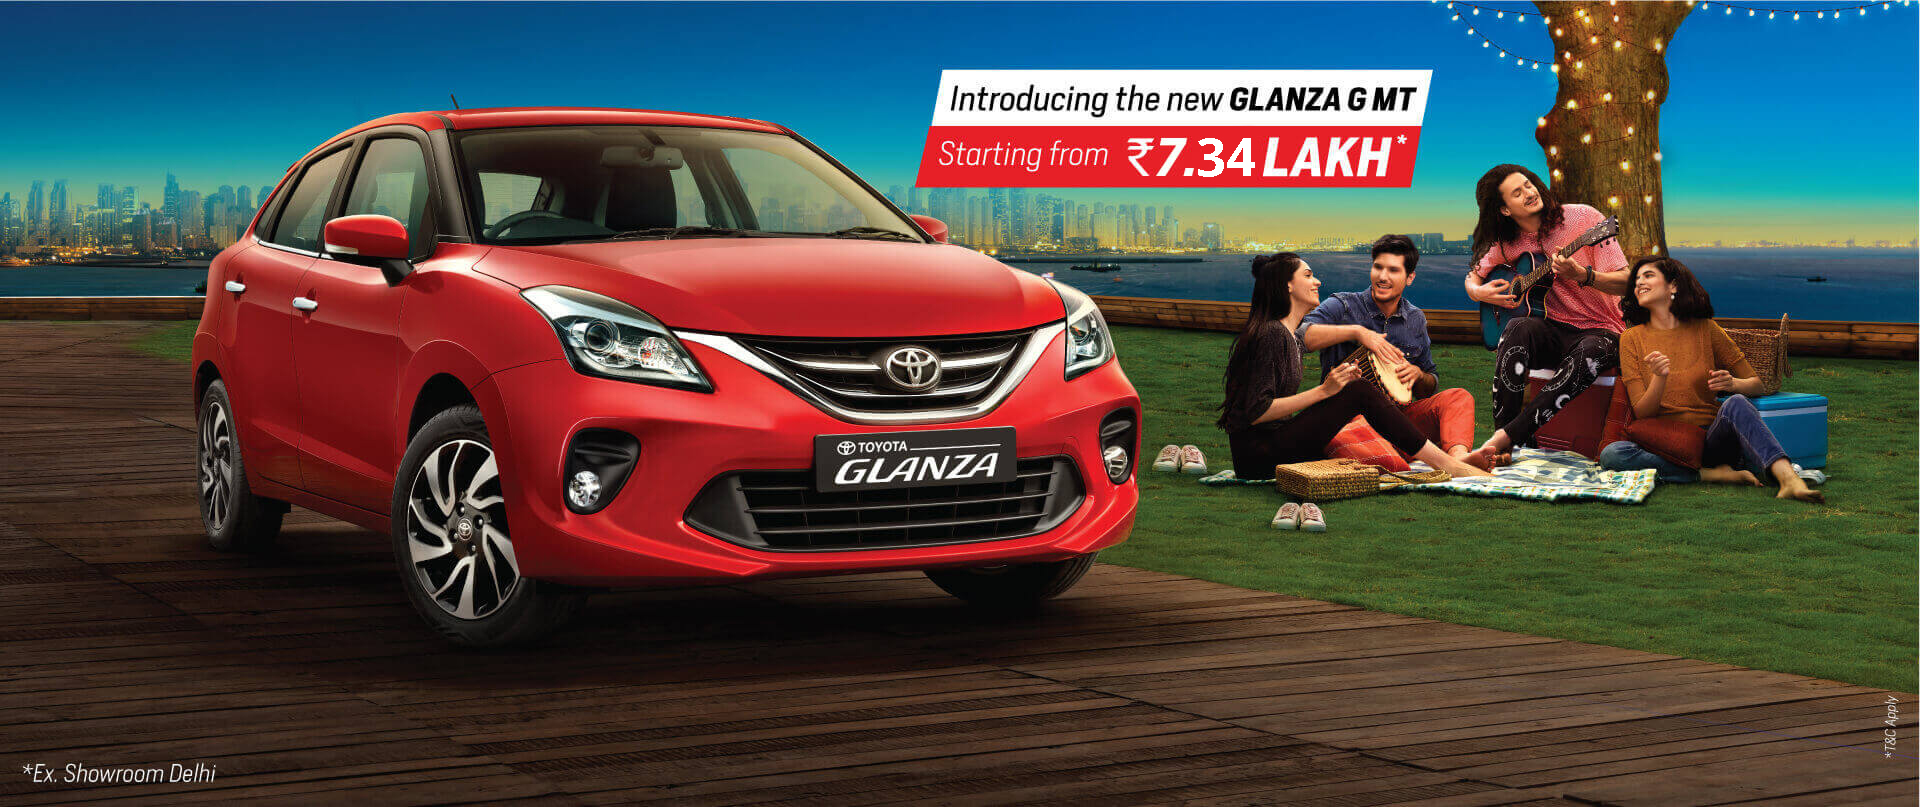 Toyota Official Site >> Toyota Dealer Official Toyota Glanza Site